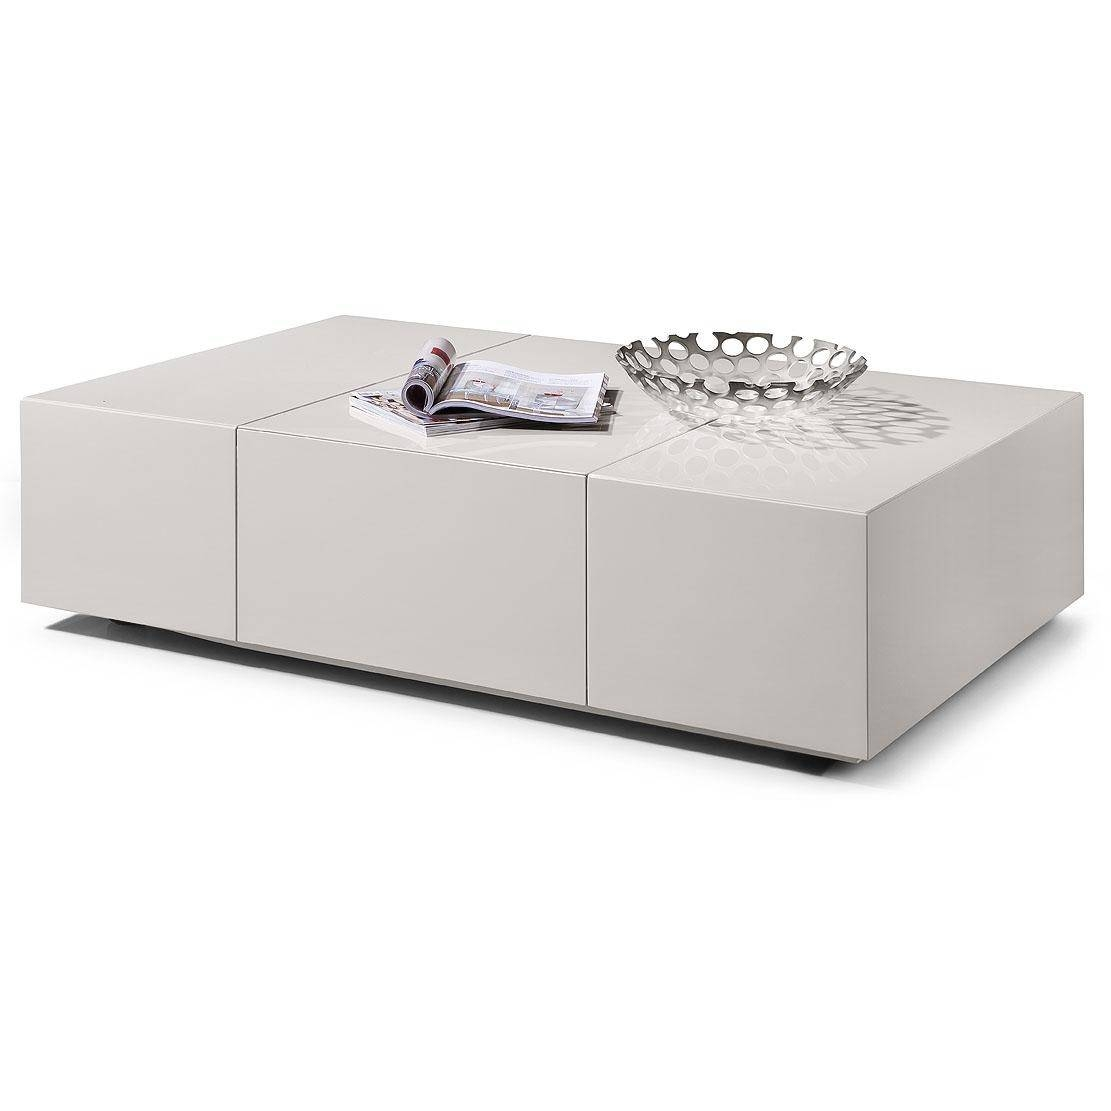 Coffee Table: Impressive White Coffee Tables With Storage Square in Modern Coffee Tables With Storage (Image 2 of 15)